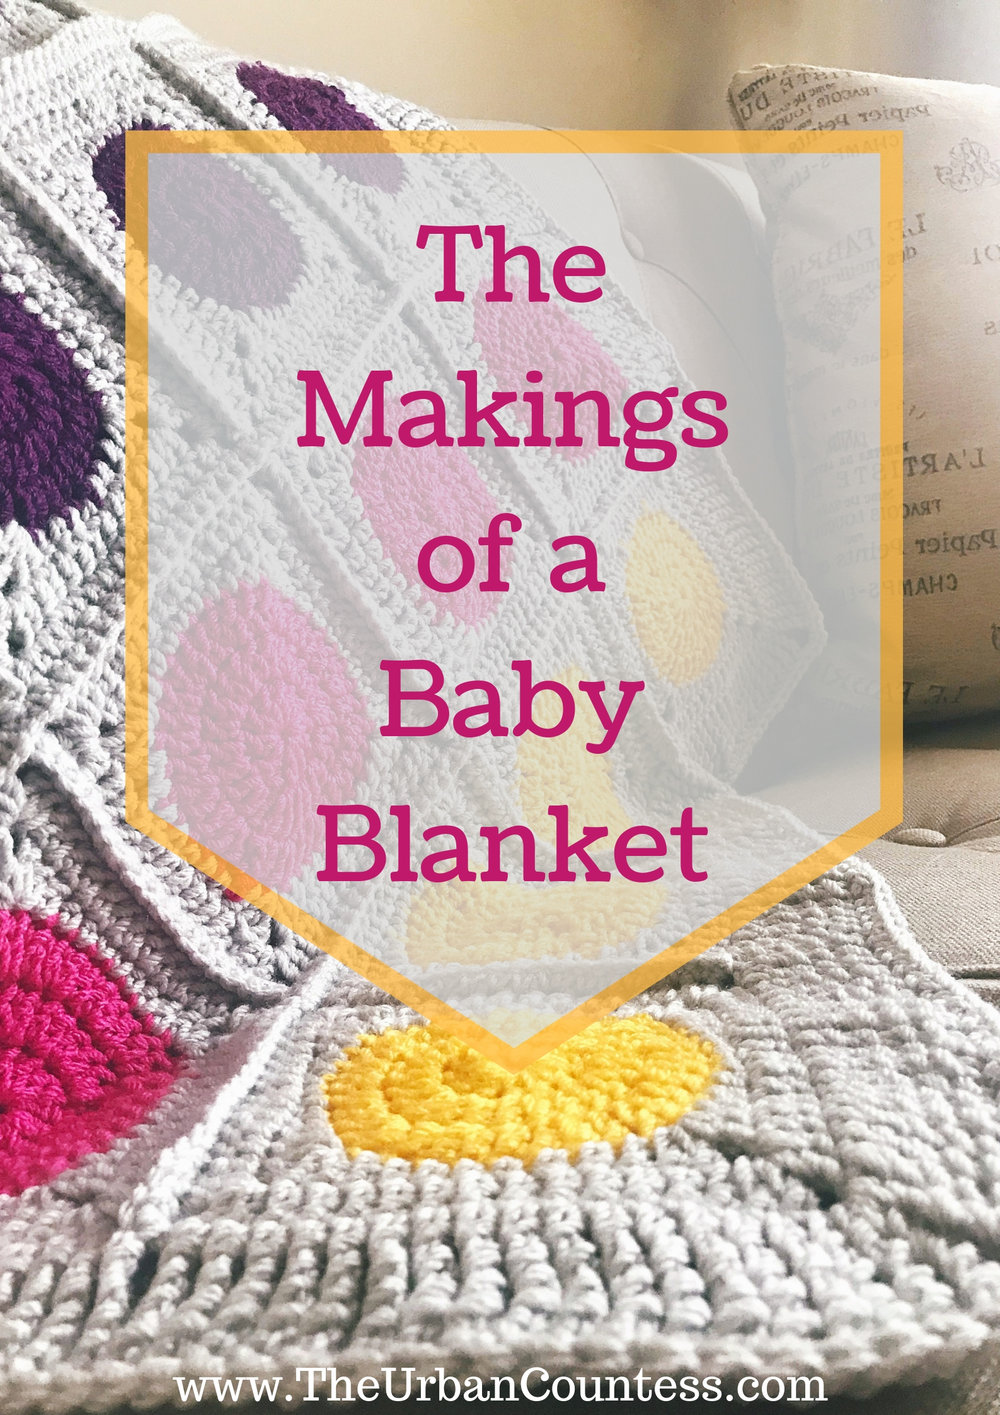 |The Makings of a Baby Blanket| Come see the inspiration behind this beautiful blanket!